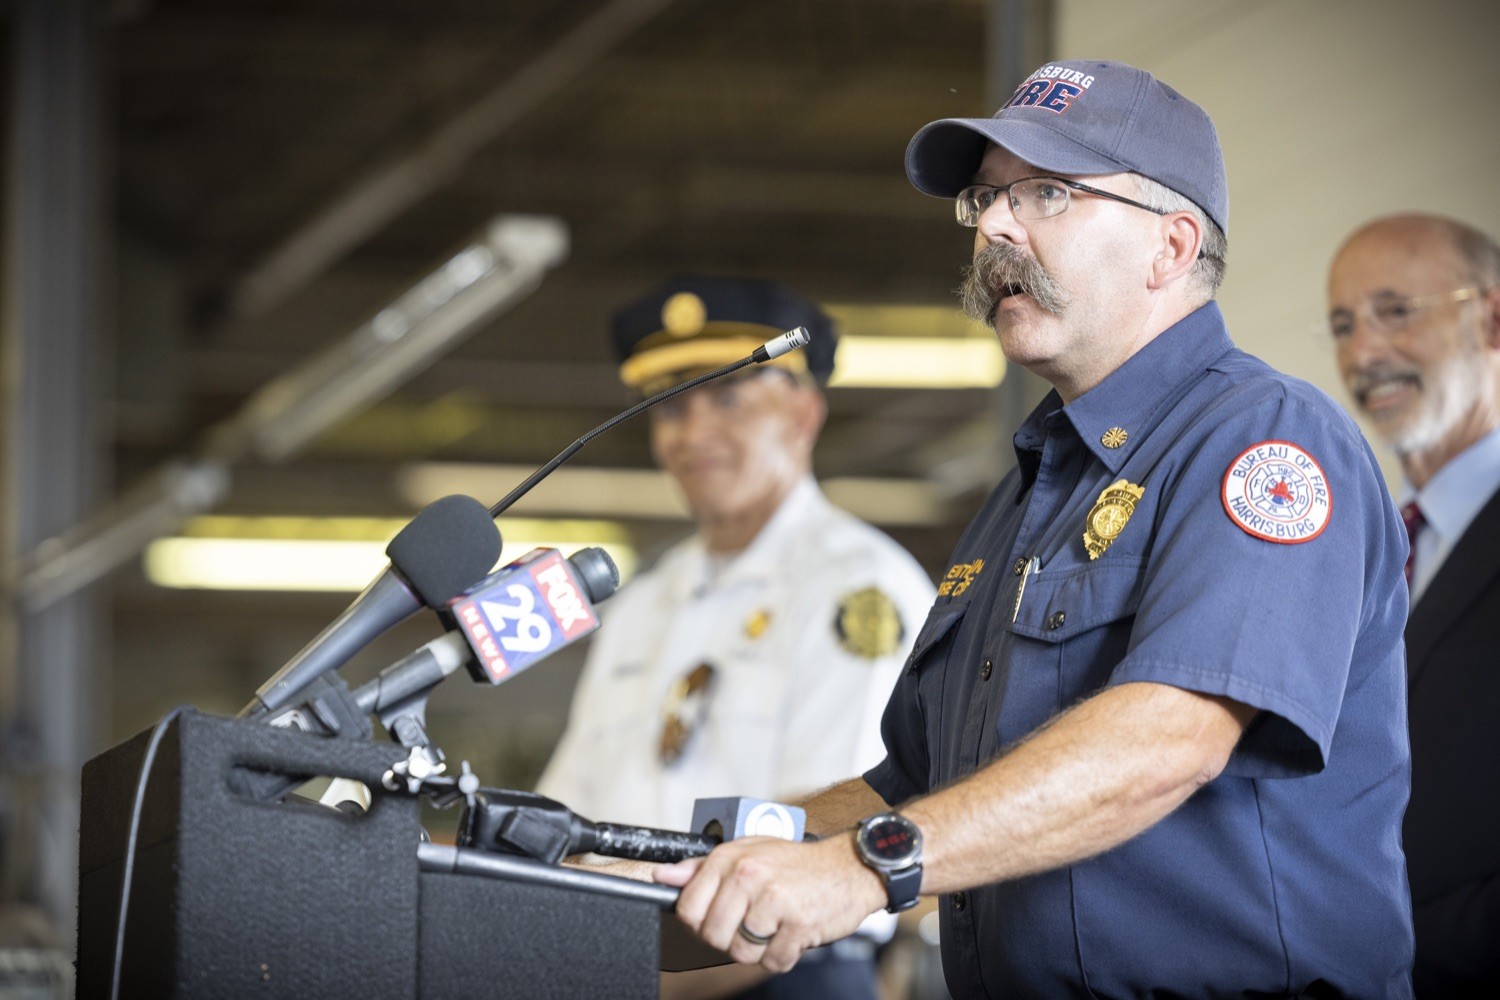 """<a href=""""https://filesource.wostreaming.net/commonwealthofpa/photo/18936_gov_taskforceone_dz_003.jpg"""" target=""""_blank"""">⇣Download Photo<br></a>Pennsylvania-Task Force 1 member Chief Brian Enterline thanking members of Pennsylvania-Task Force.  Governor Tom Wolf thanked members of Pennsylvania-Task Force 1 (PA- TF1), who returned today to Philadelphia after spending two weeks assisting with search and rescue efforts at the site of the recent deadly building collapse in Surfside, Florida.  Philadelphia, Pa.  July 16, 2021"""